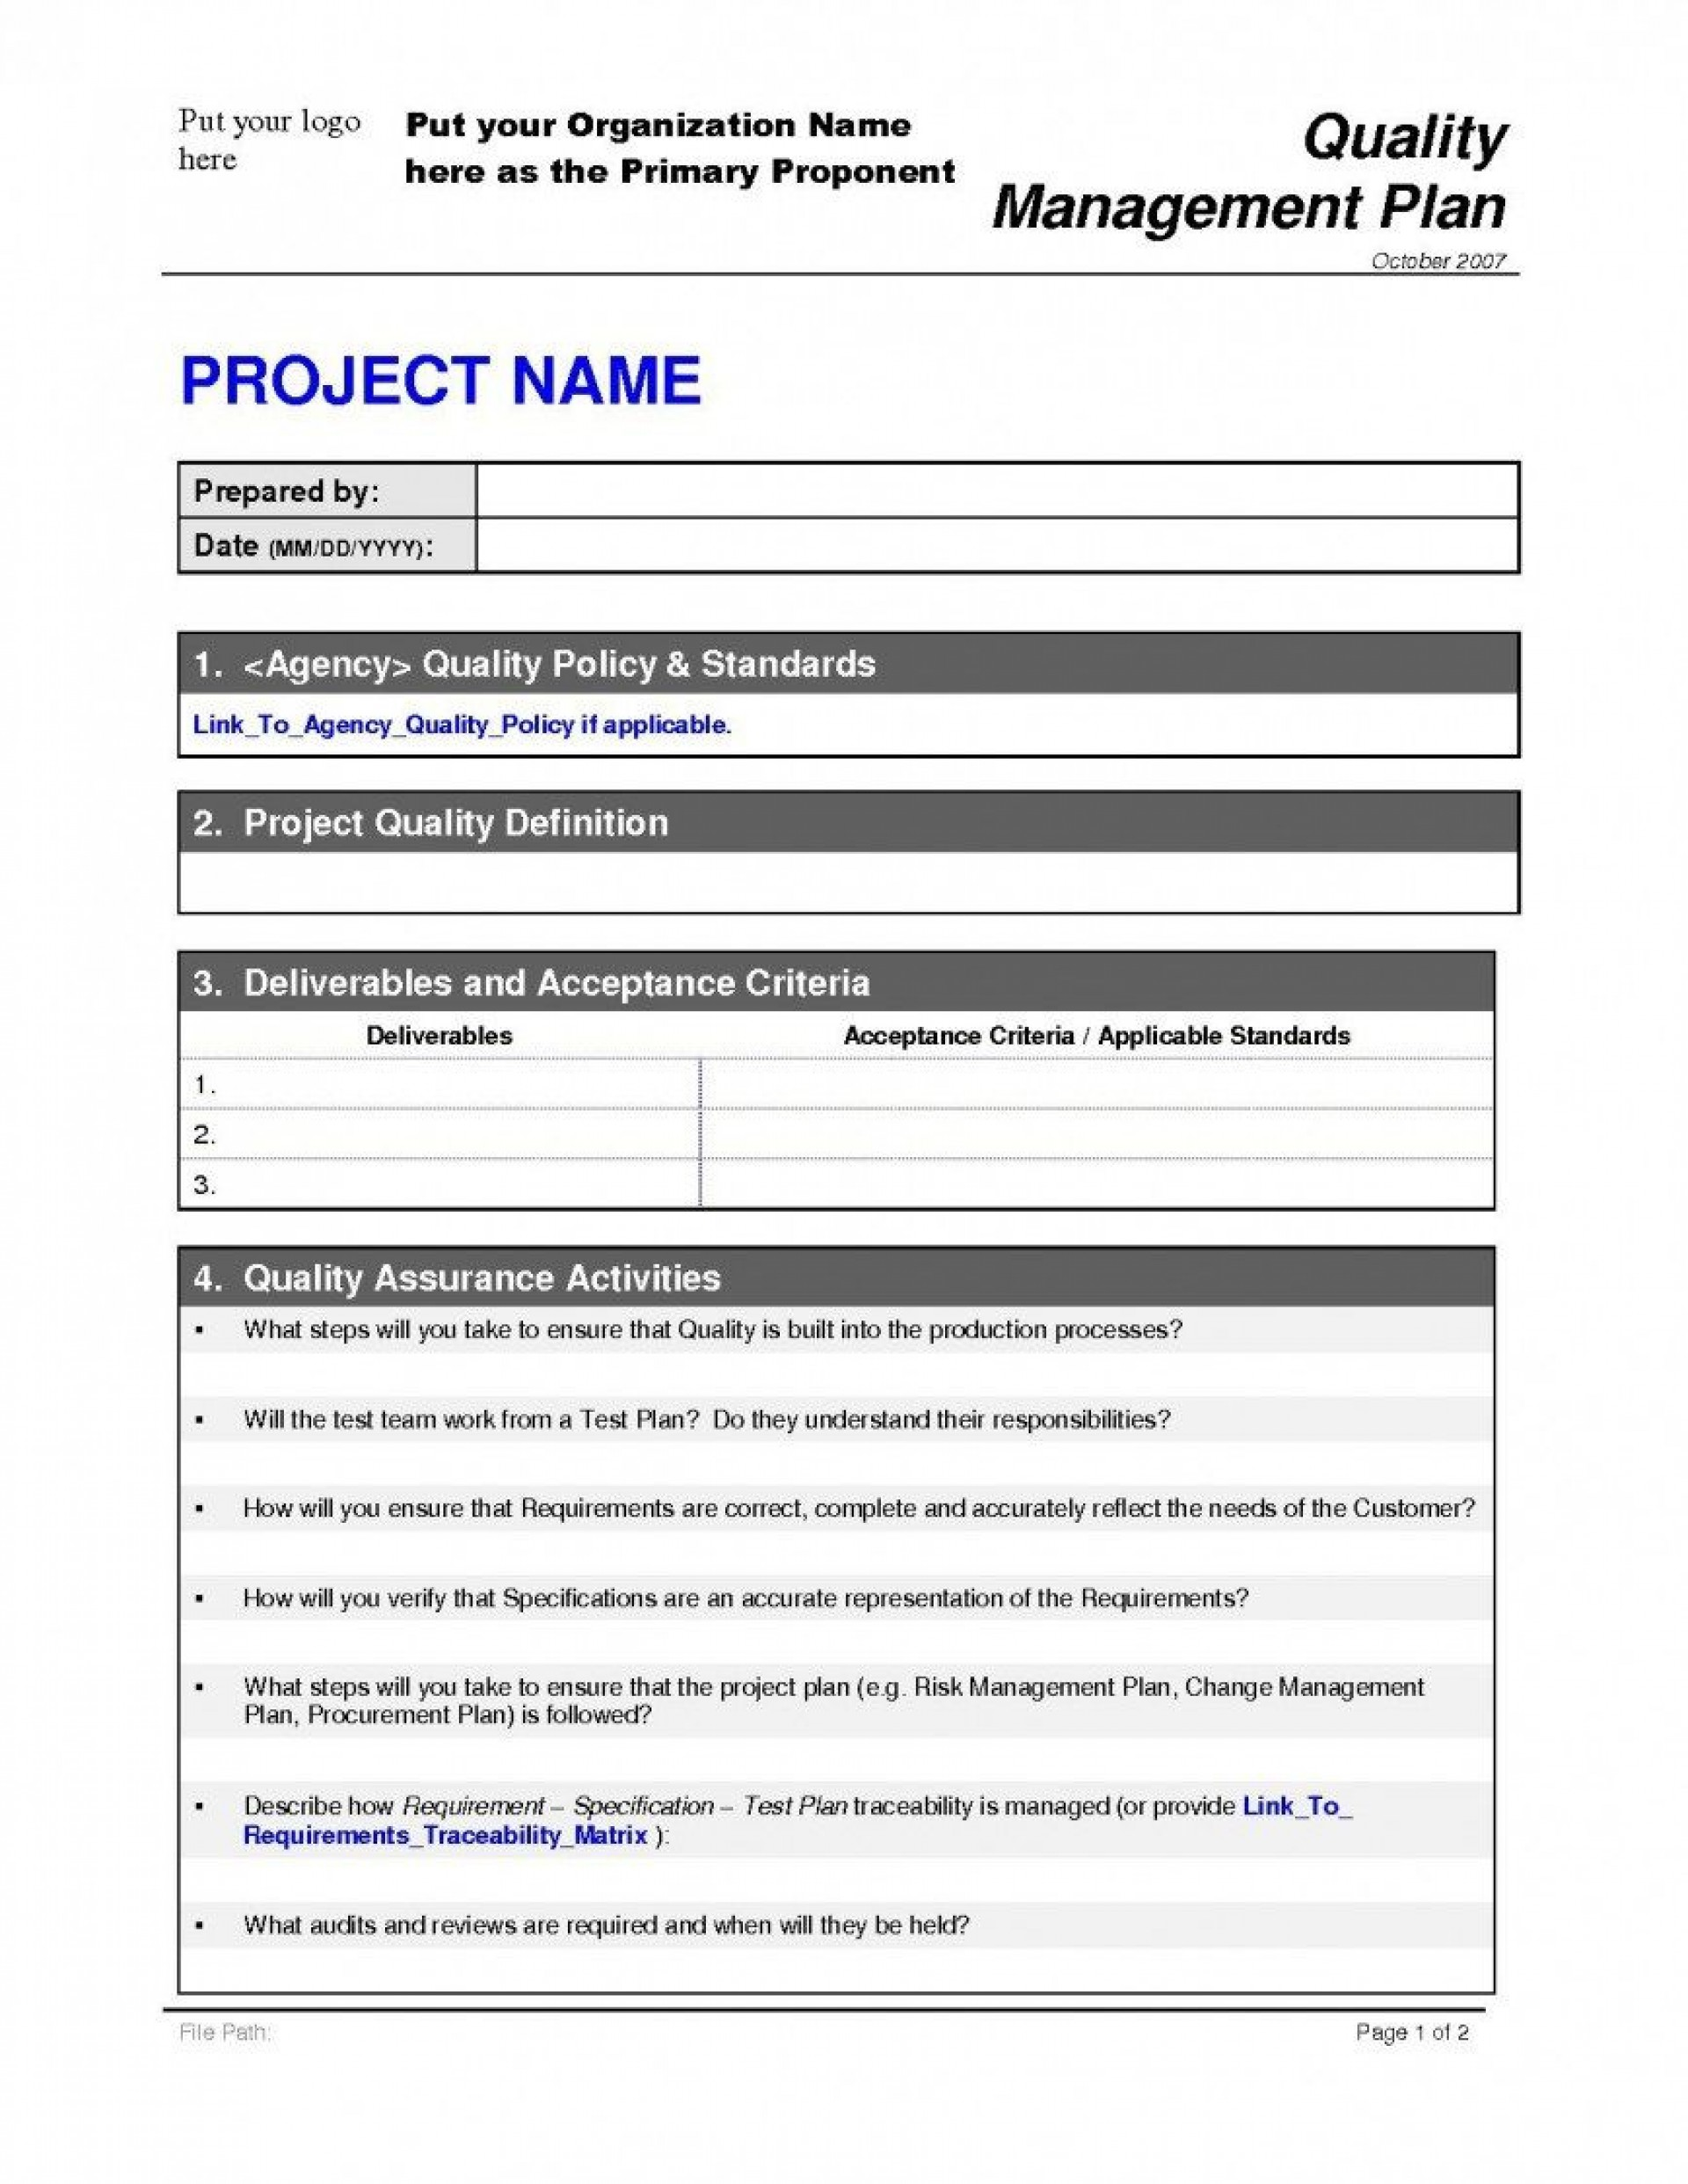 008 Striking Project Management Plan Template Pmi Picture  Pmp Quality Pmbok1920